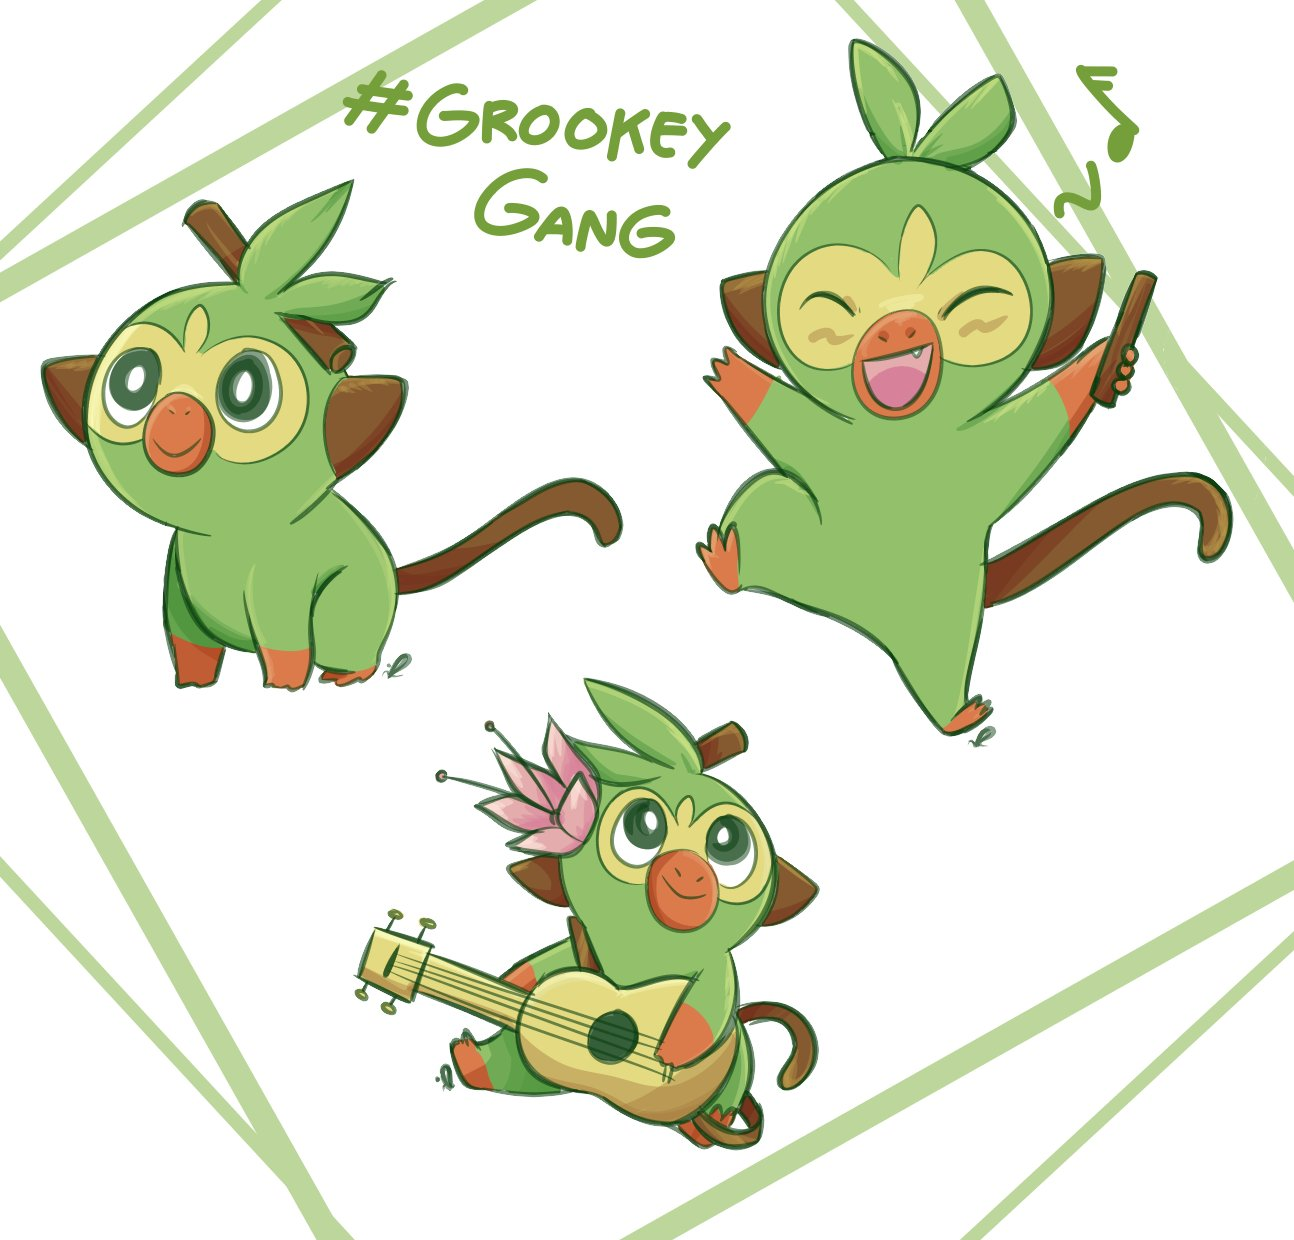 Fluor But Christmas On Twitter Gucci Gang But Instead Grookey Gang Pokemonswsh Pokemonswordandshield Pokemon Grookeygang Grookey gang where you at. twitter